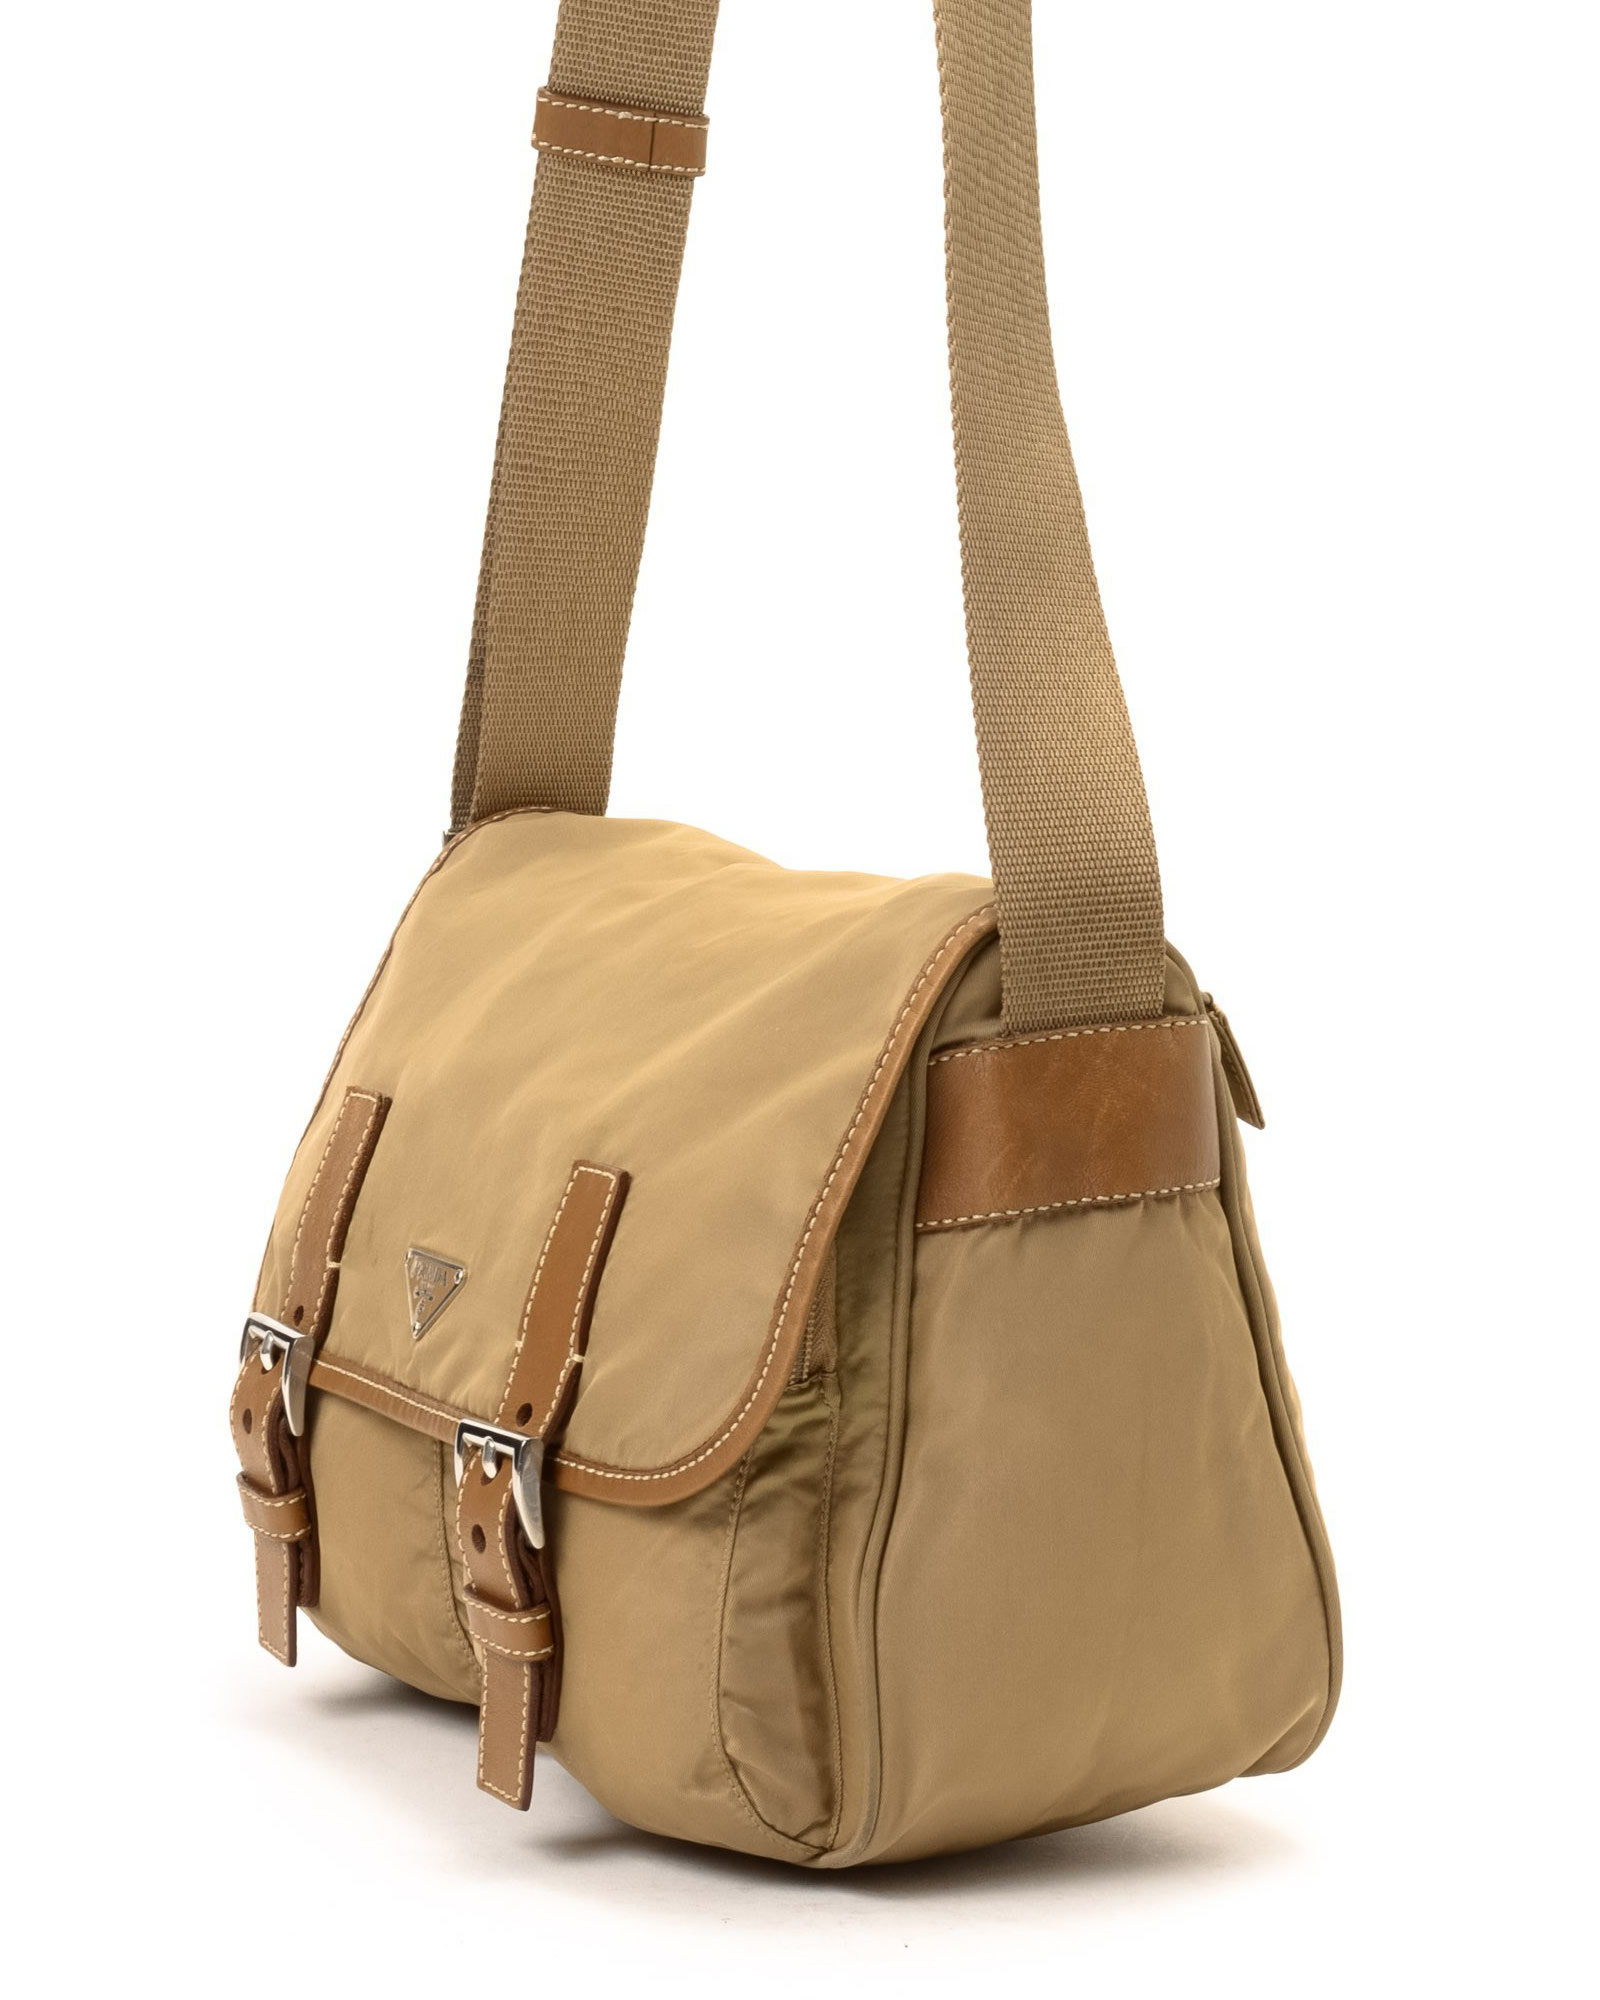 a73c0ca50 ... canvas messenger 6d9bf b020c spain lyst prada messenger bag vintage in  natural 4f9c4 99cba ...